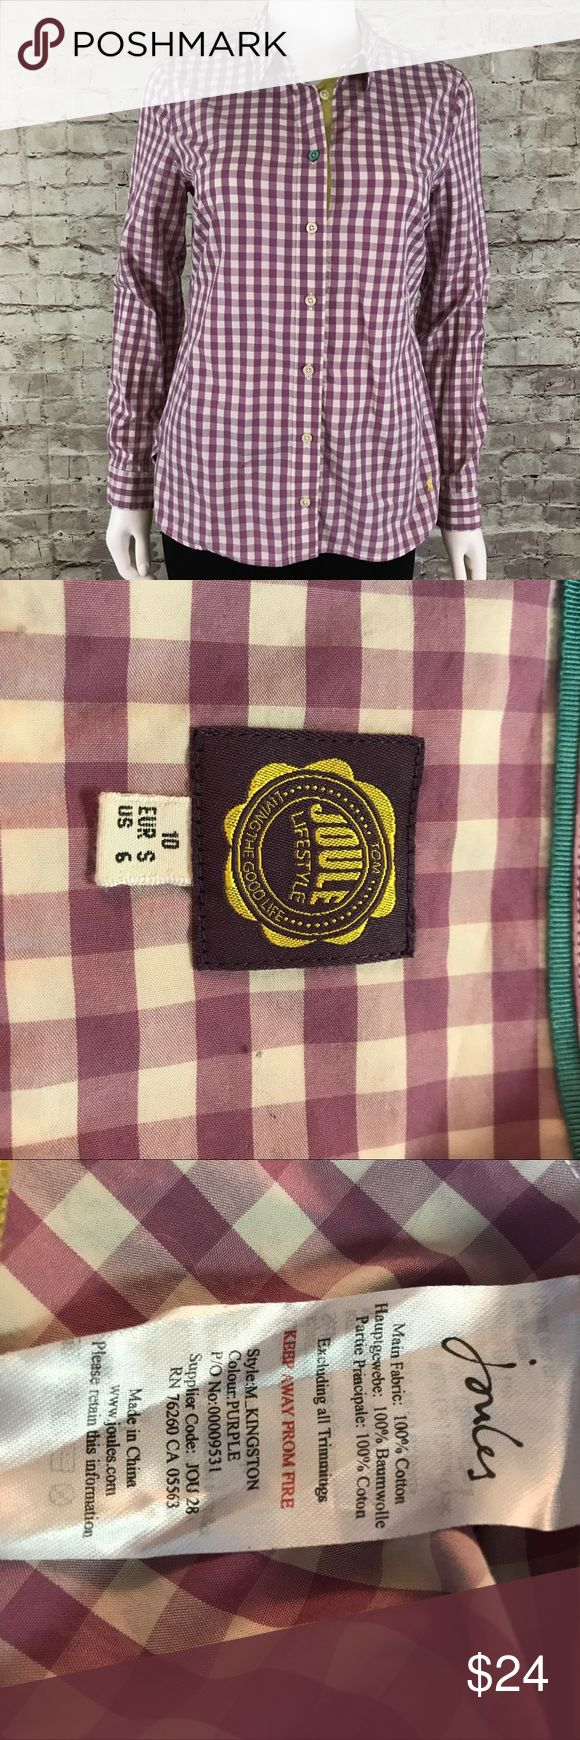 Joules Button Down Purple Check Shirt Too many fine details to list - please see all pictures for this very special top!  If you don't know the Joules brand - please look at how much detail is put into their work. Button down neckline. 100% Cotton. Green Trim and accents. Machine wash. Please see pictures for measurements.  Thanks for looking! Joules Tops